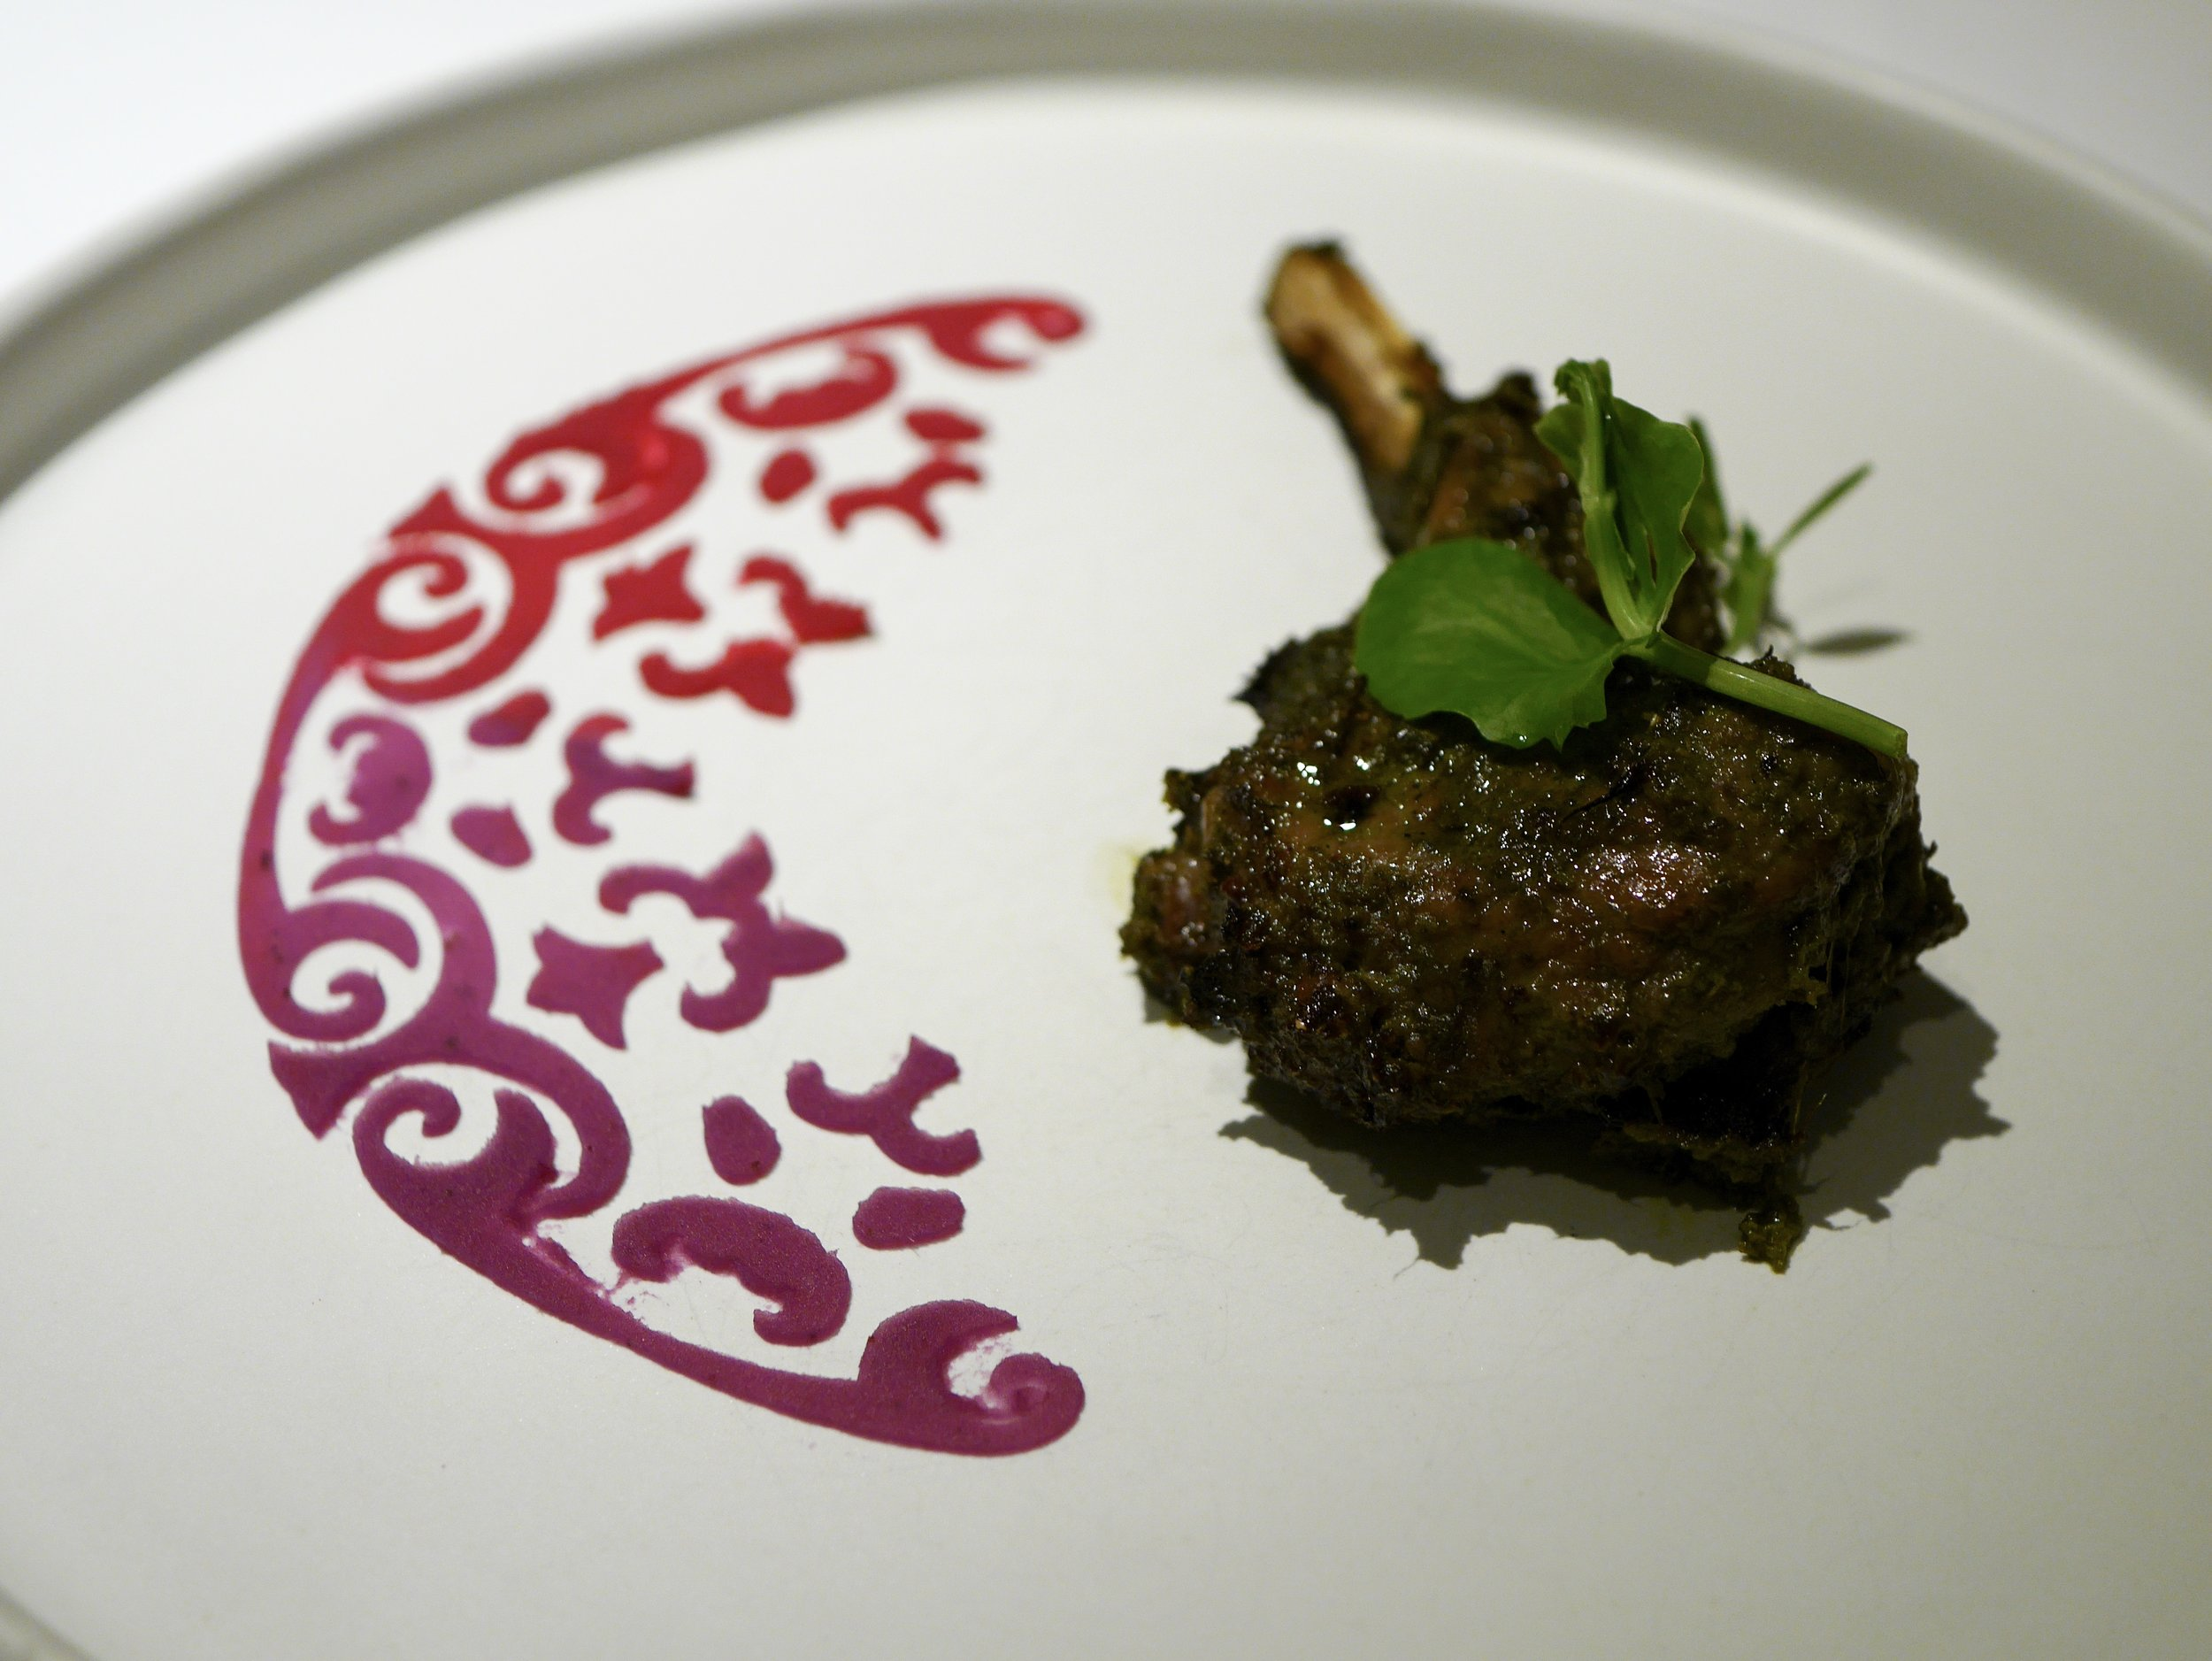 Lamb chop with beet and sweet potato rangoli